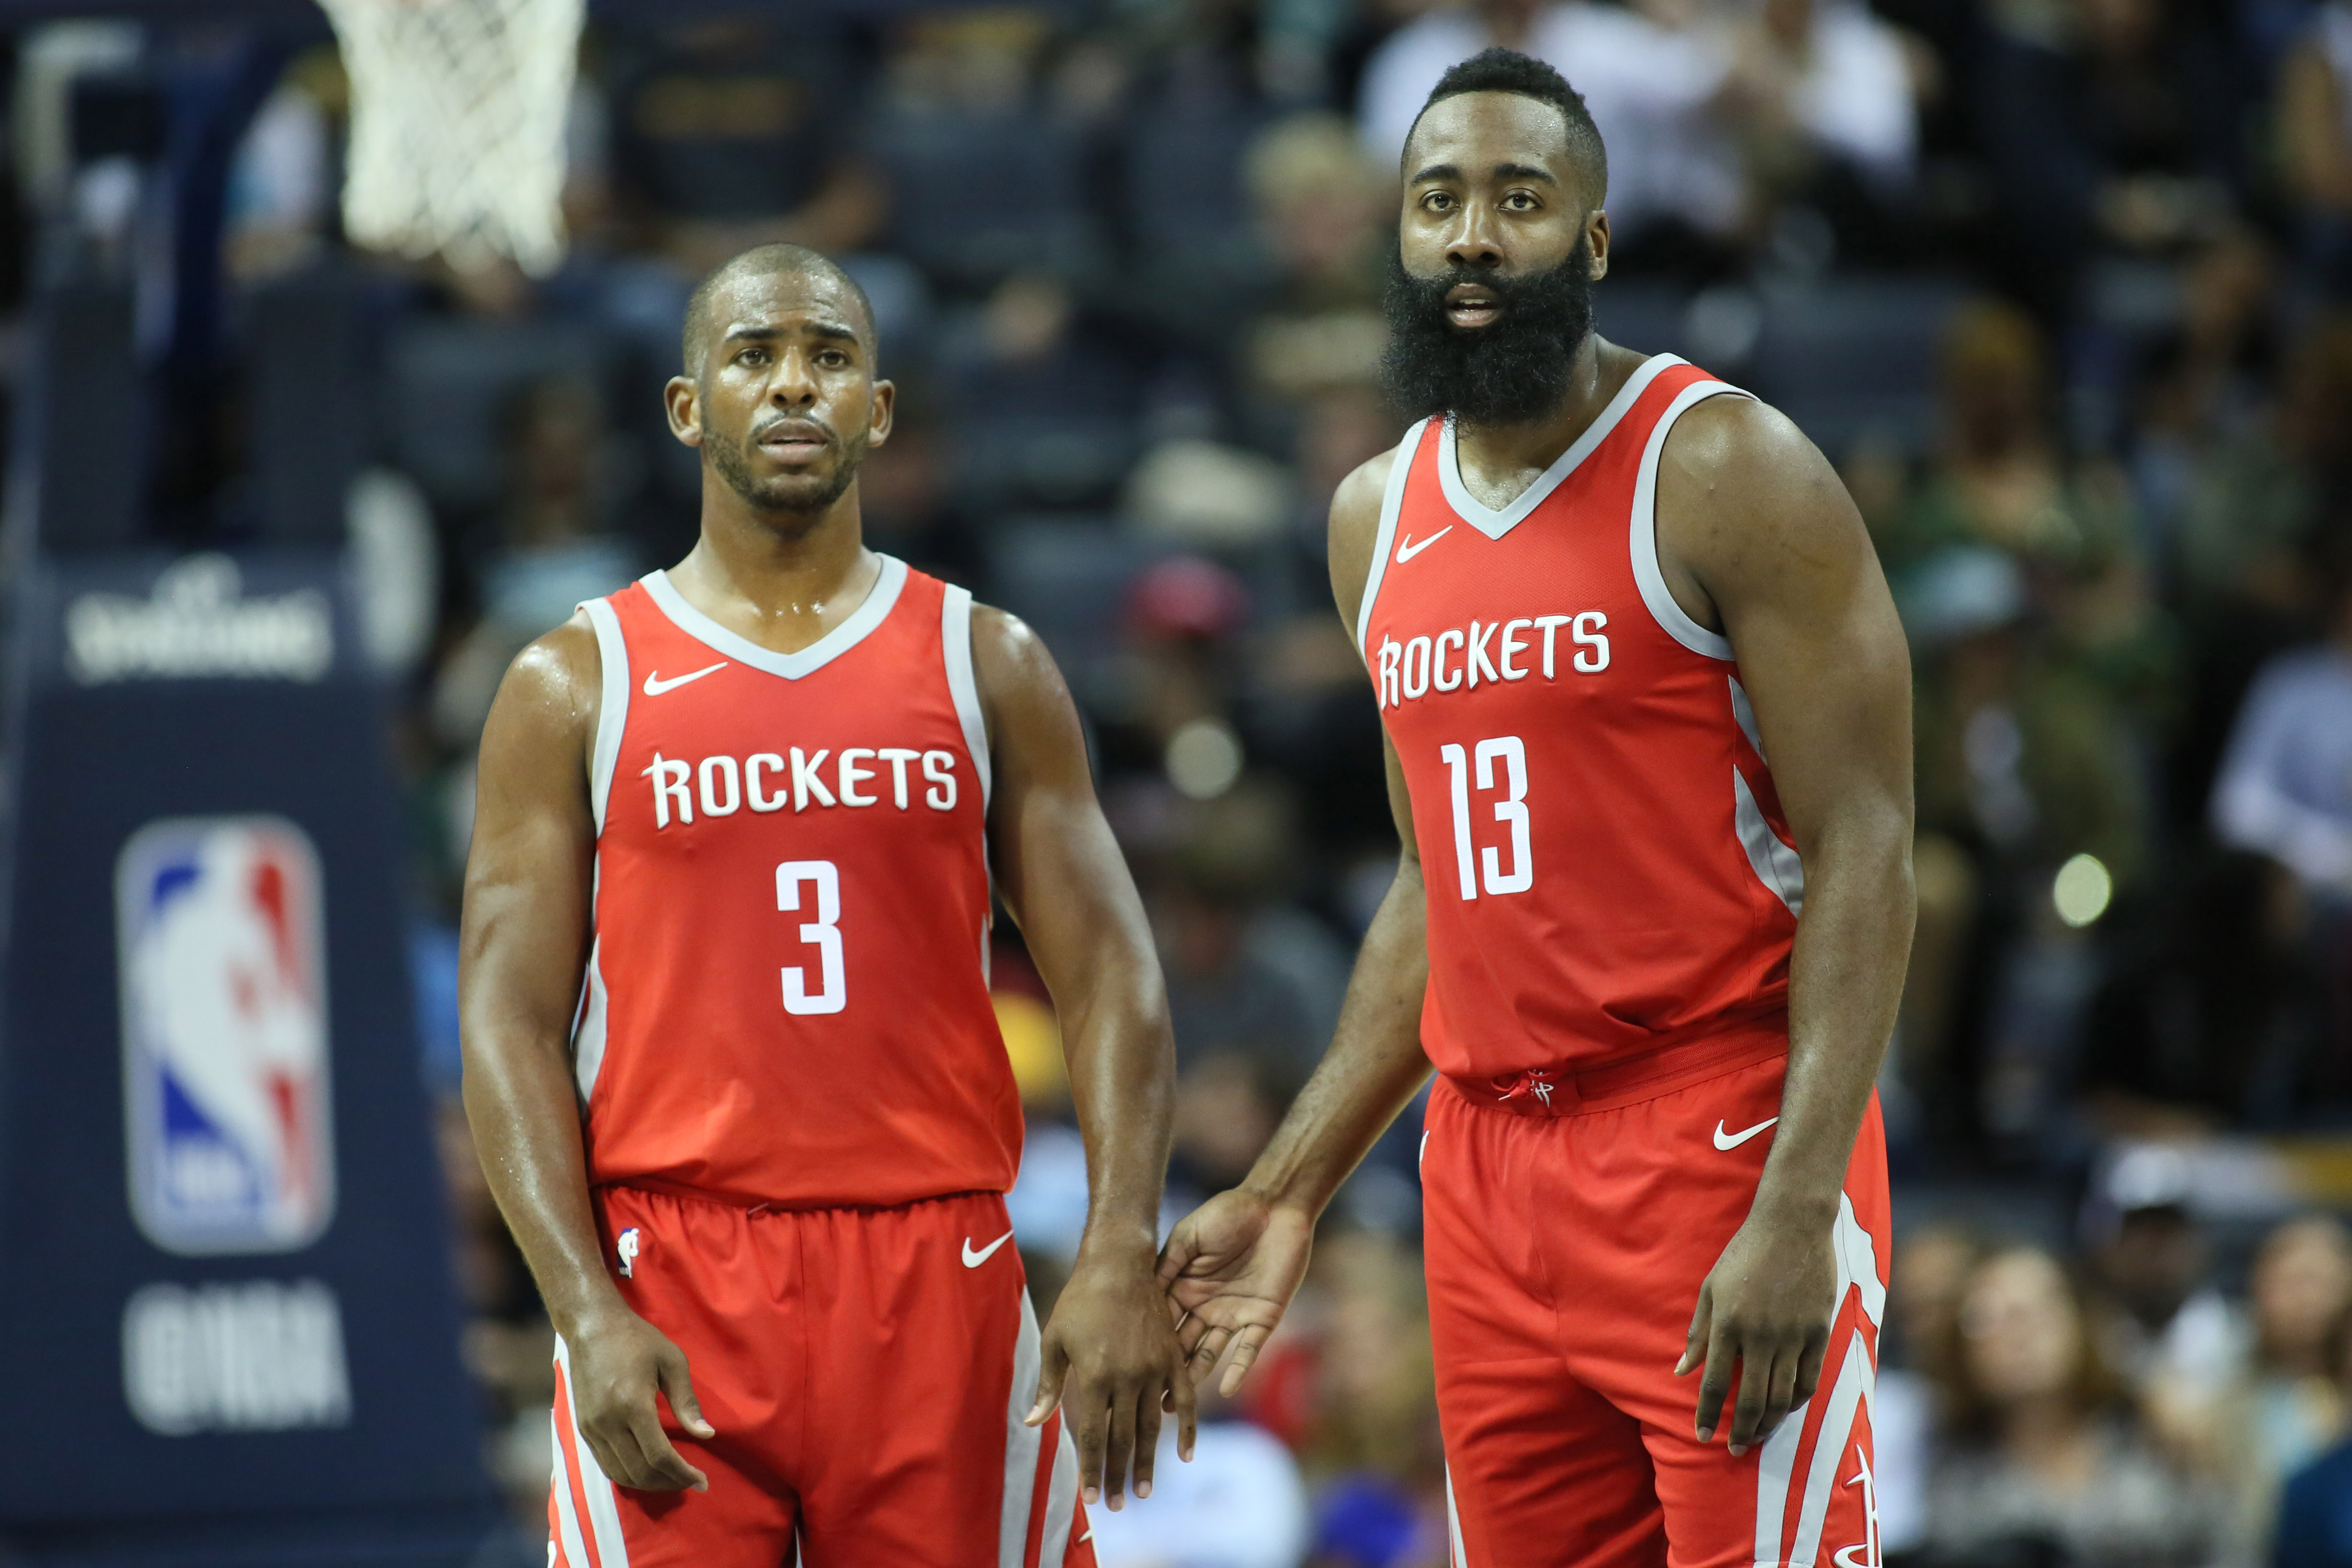 f191e15801c7 Chris Paul and James Harden showing good chemistry on court with Houston  Rockets